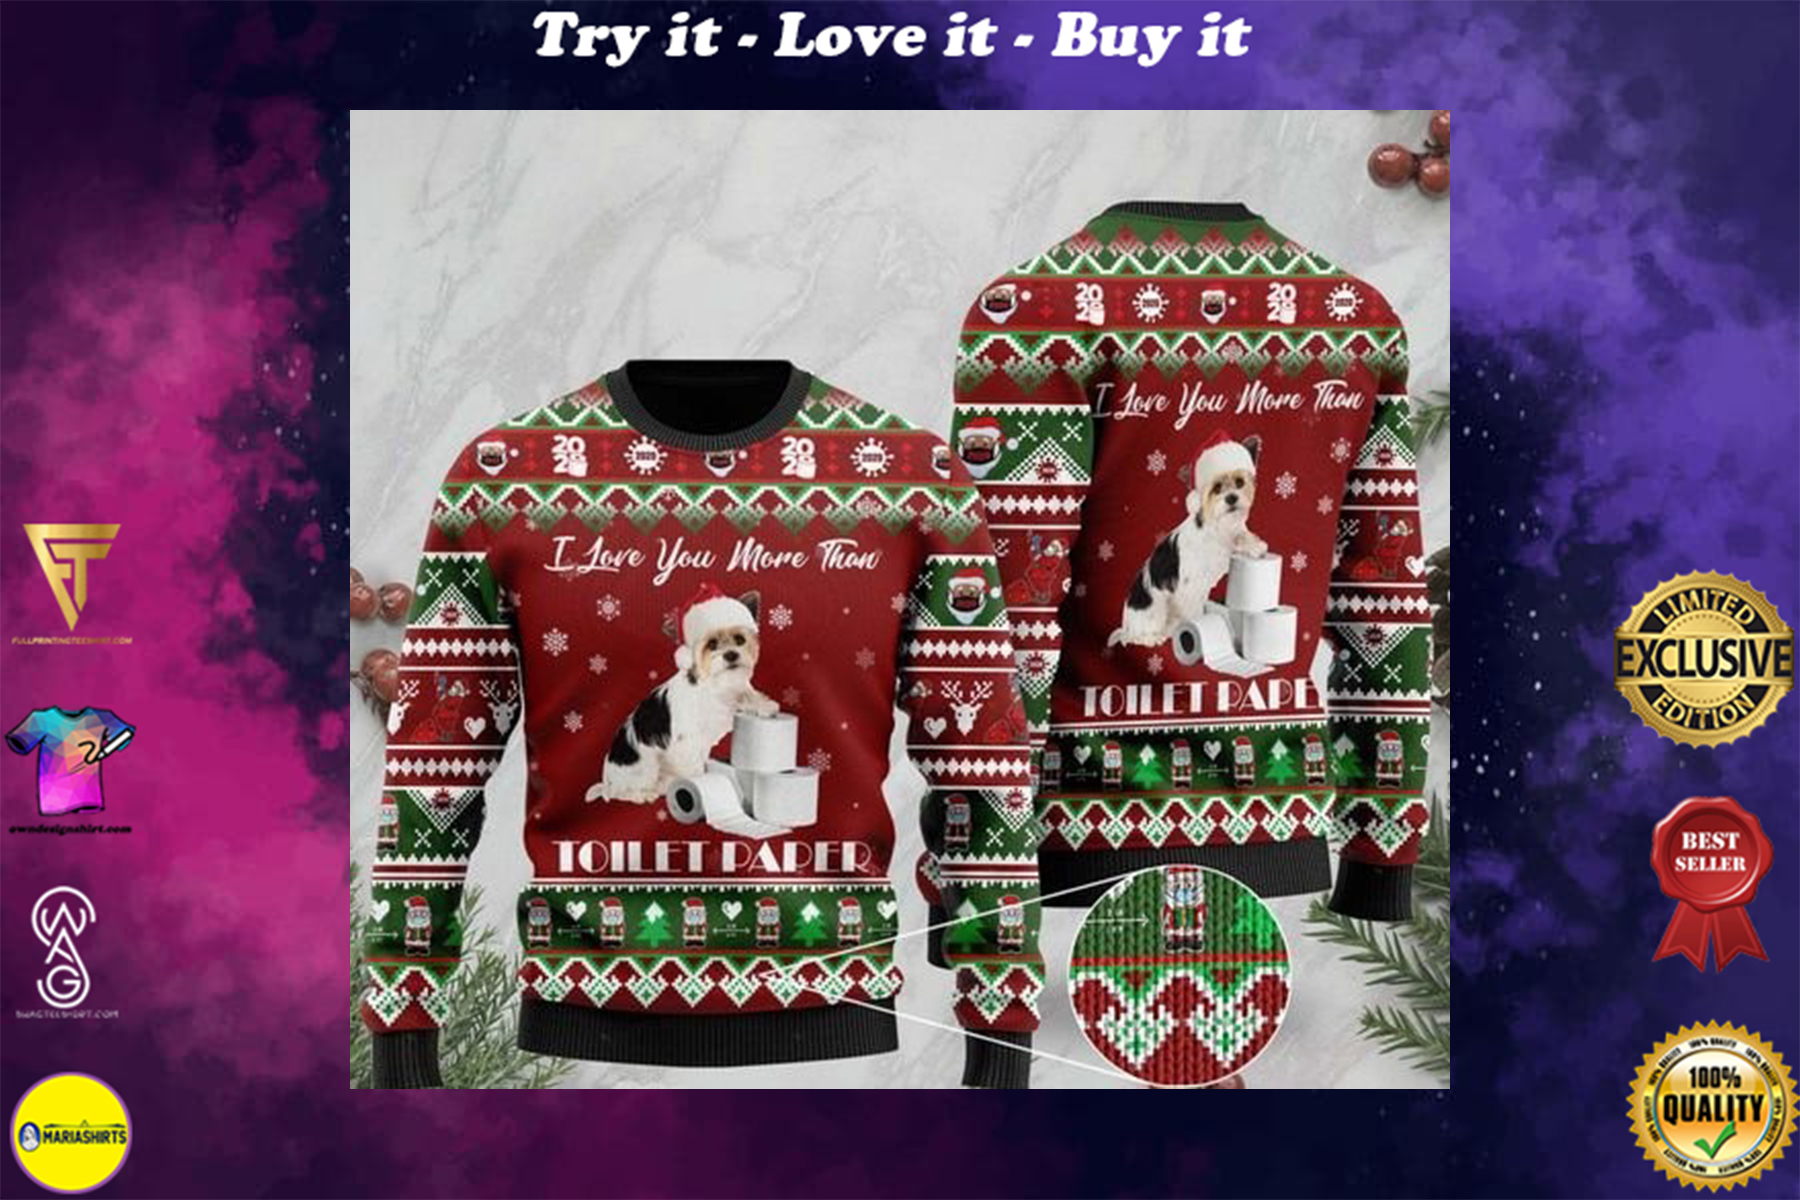 shih tzu i love you more than toilet paper ugly sweater